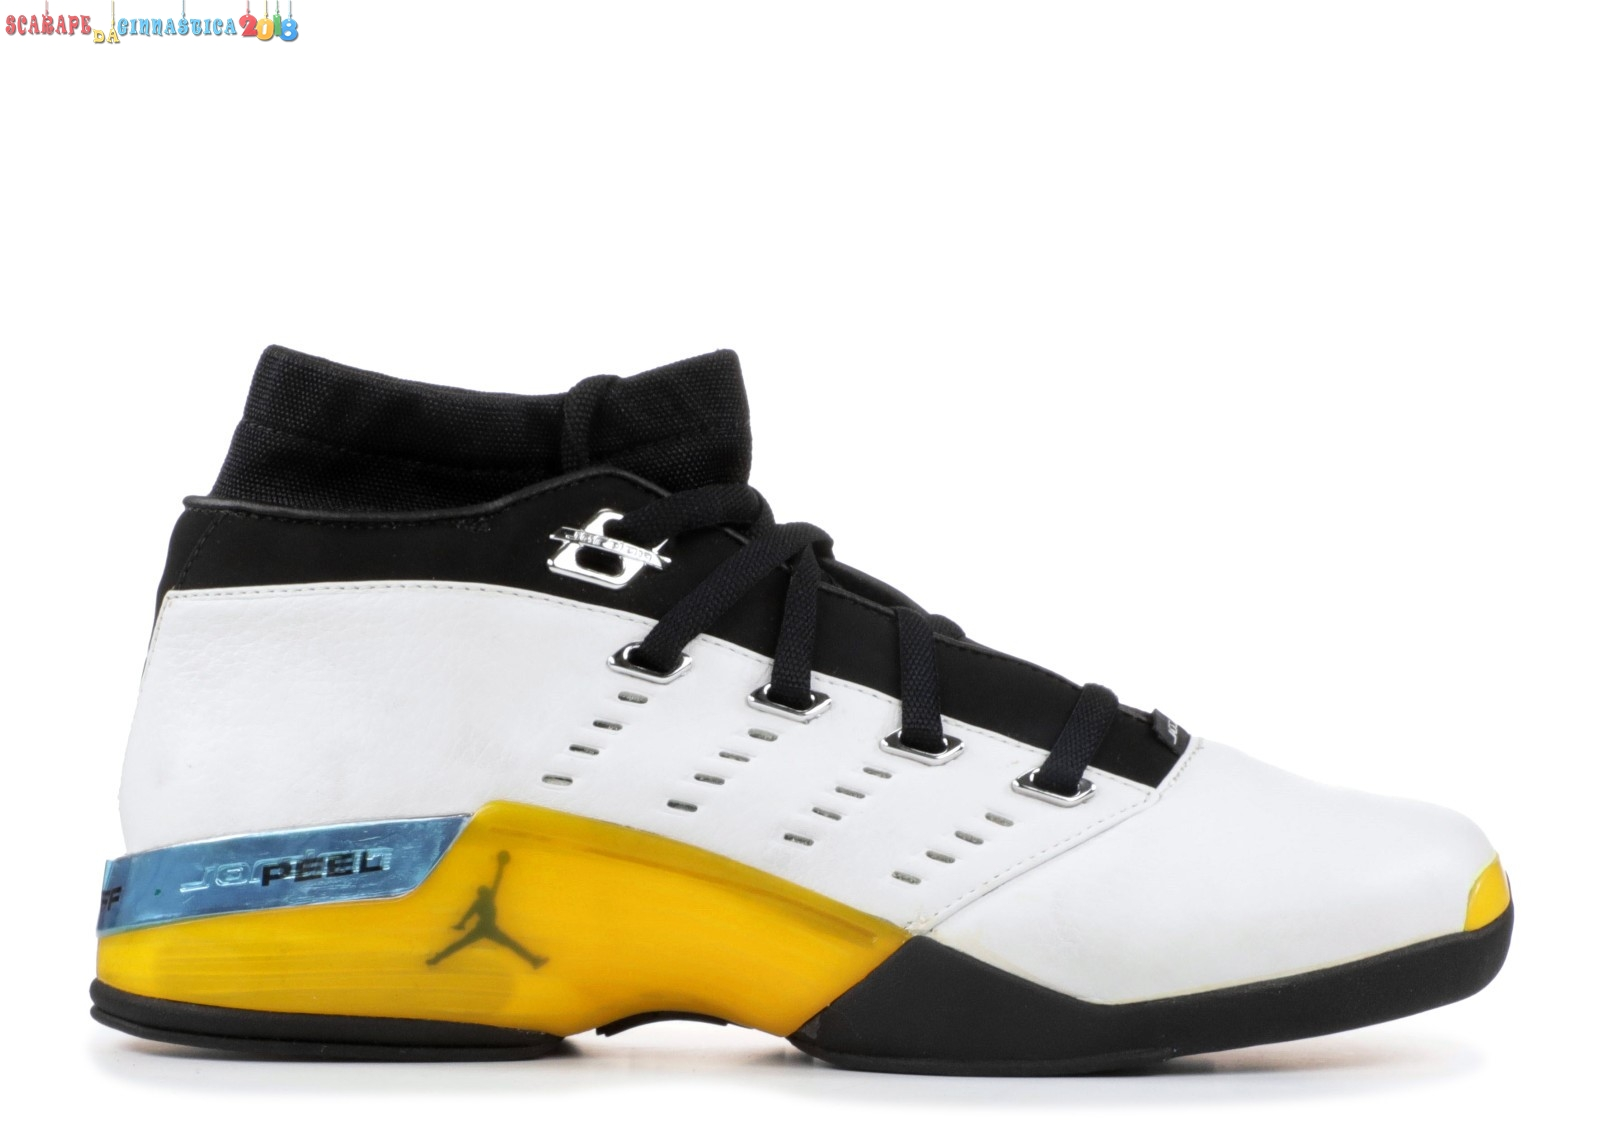 Buy Air Jordan 17 Low Nero Giallo Blu (303891-101) - Uomo - Scarpe da basket